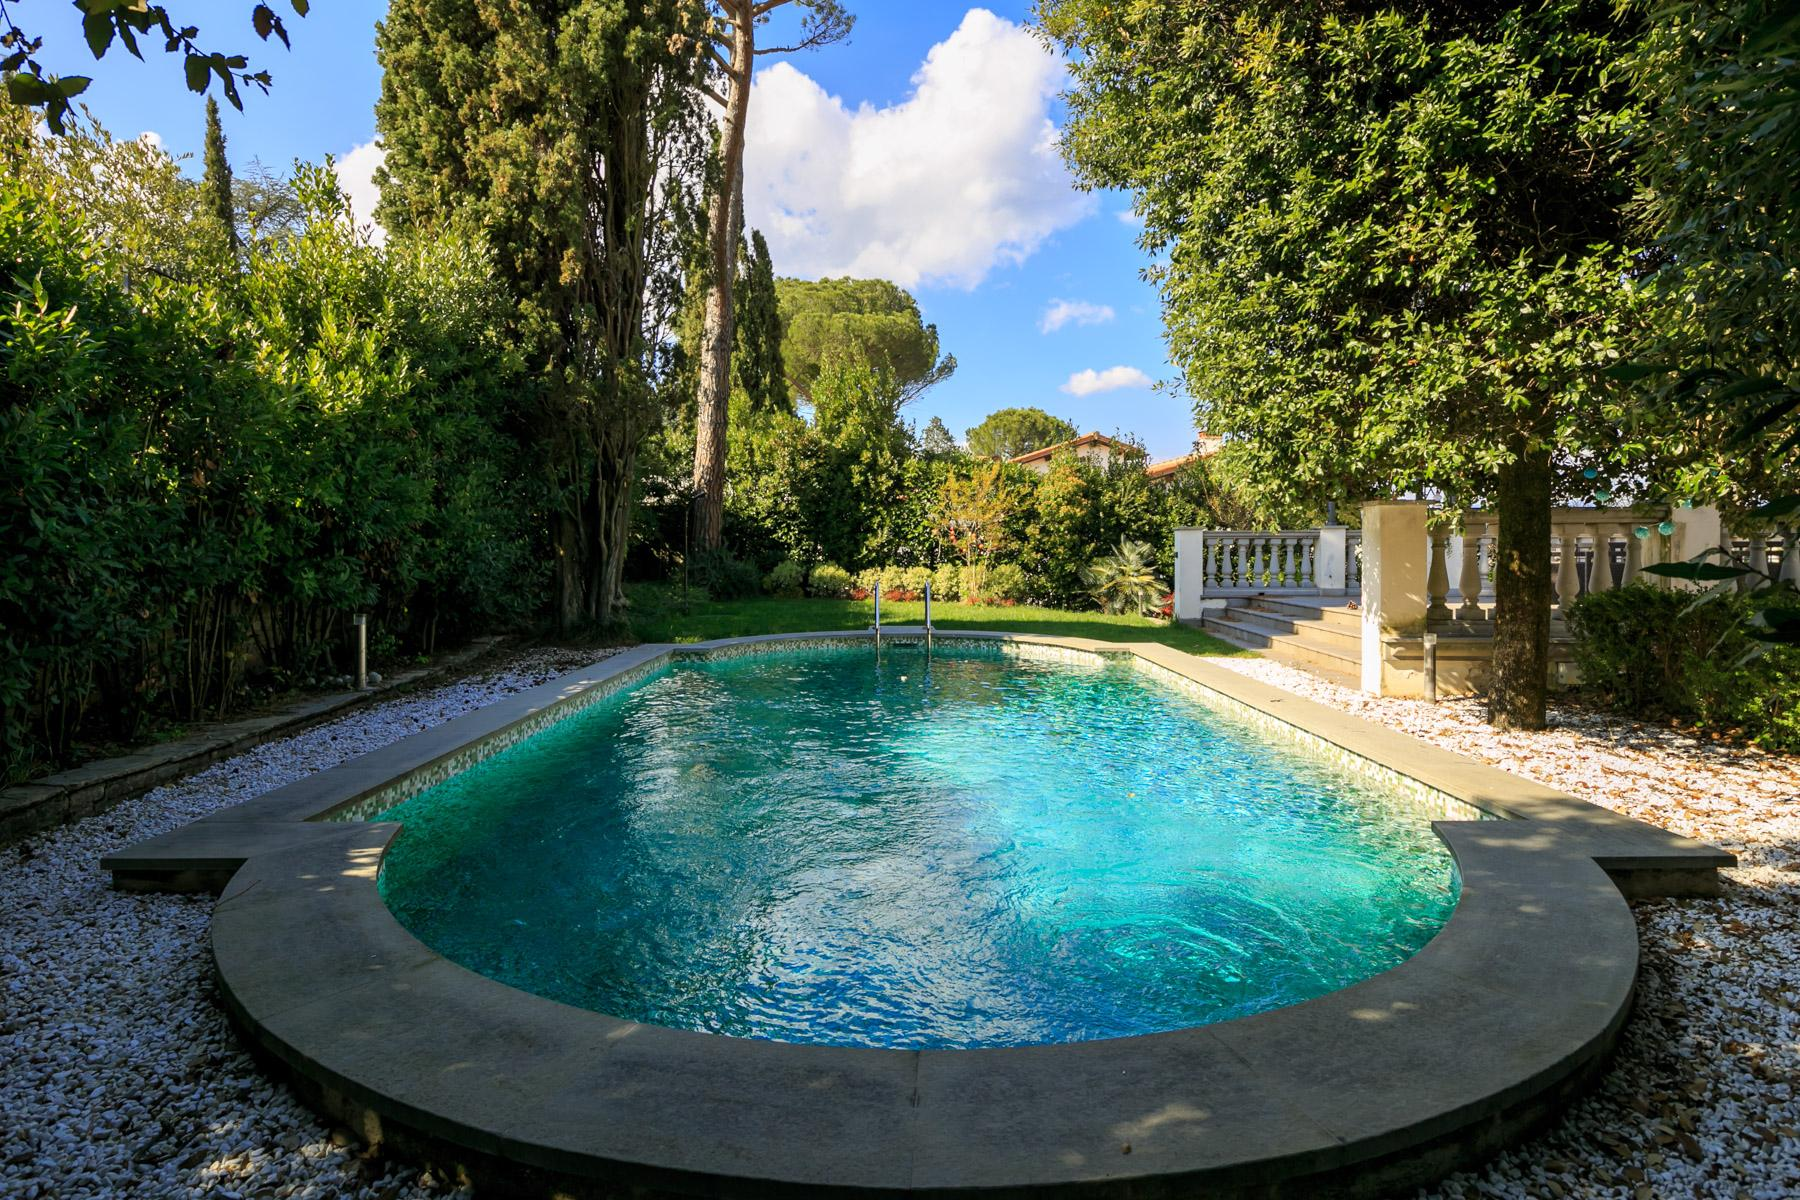 Splendid villa with pool on the Pian dei Giullari hill in Florence - 7